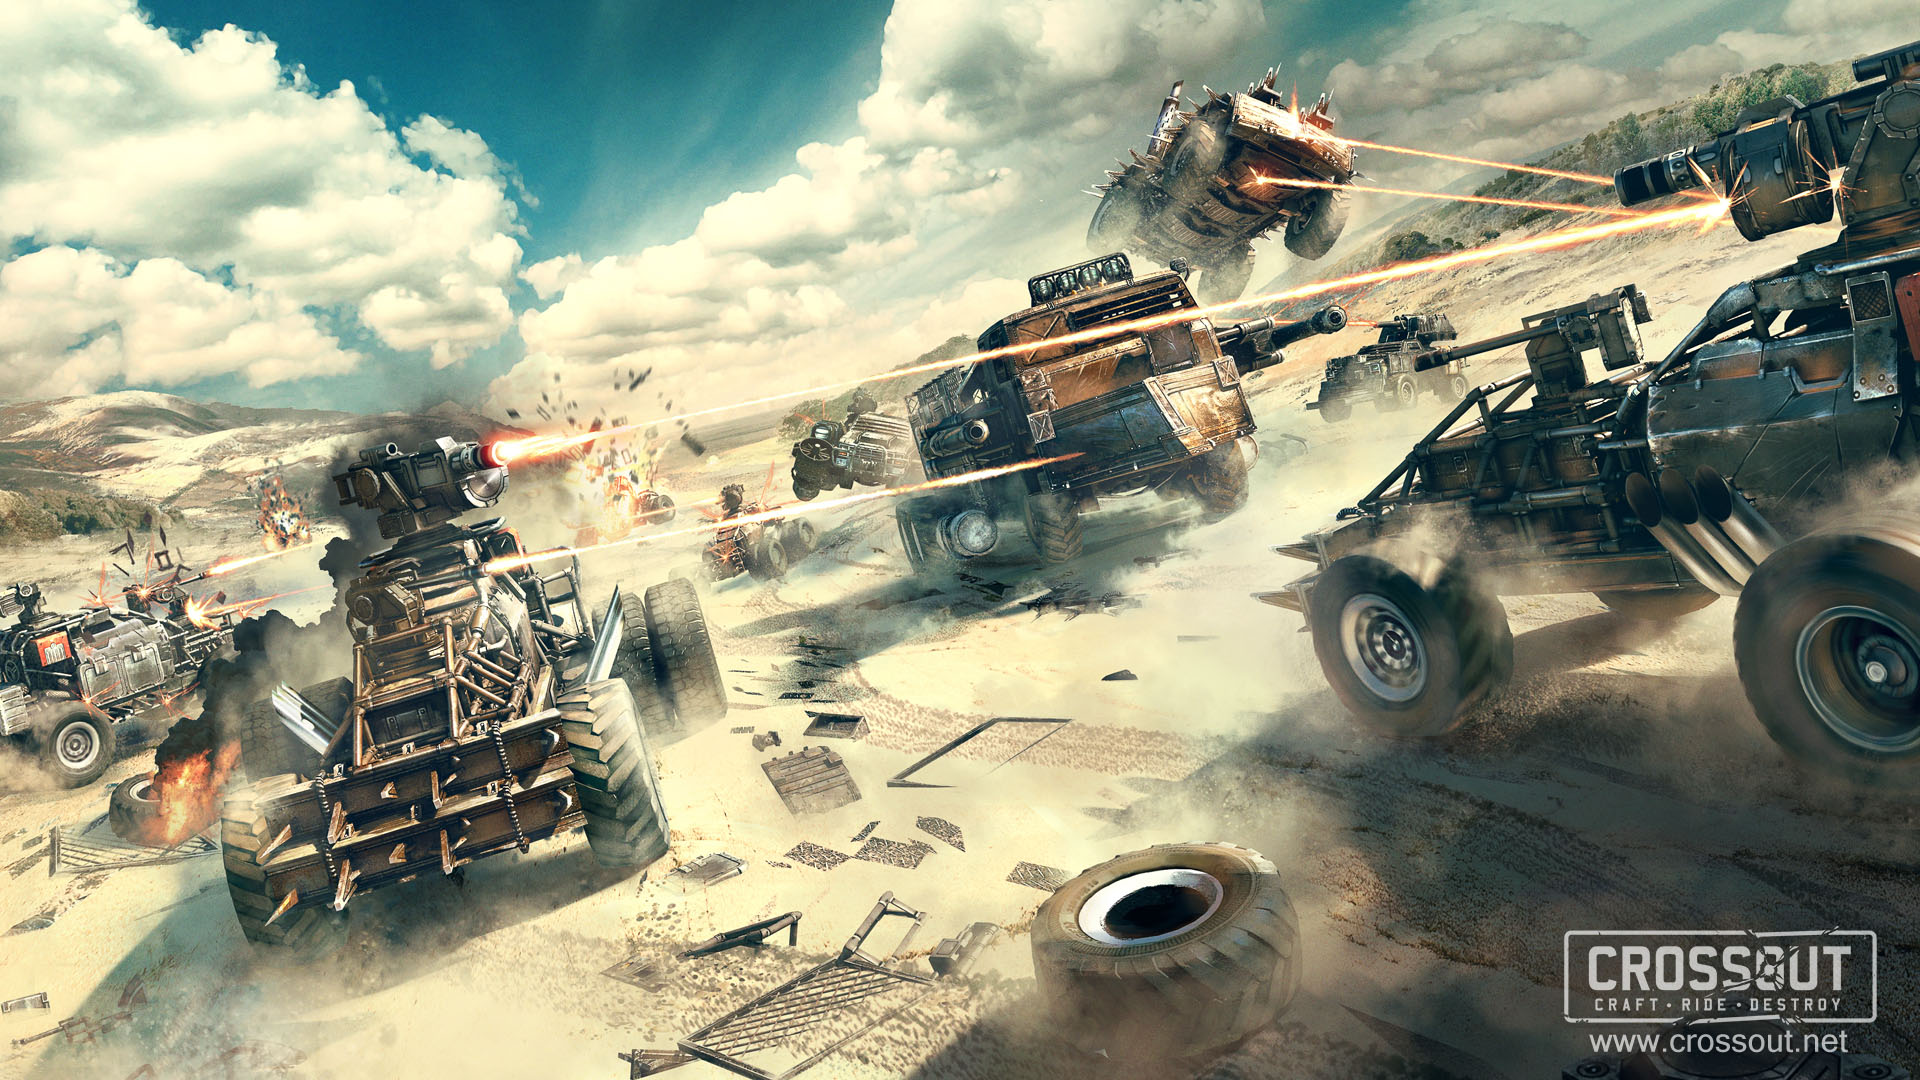 Video Game Crossout 1920x1080